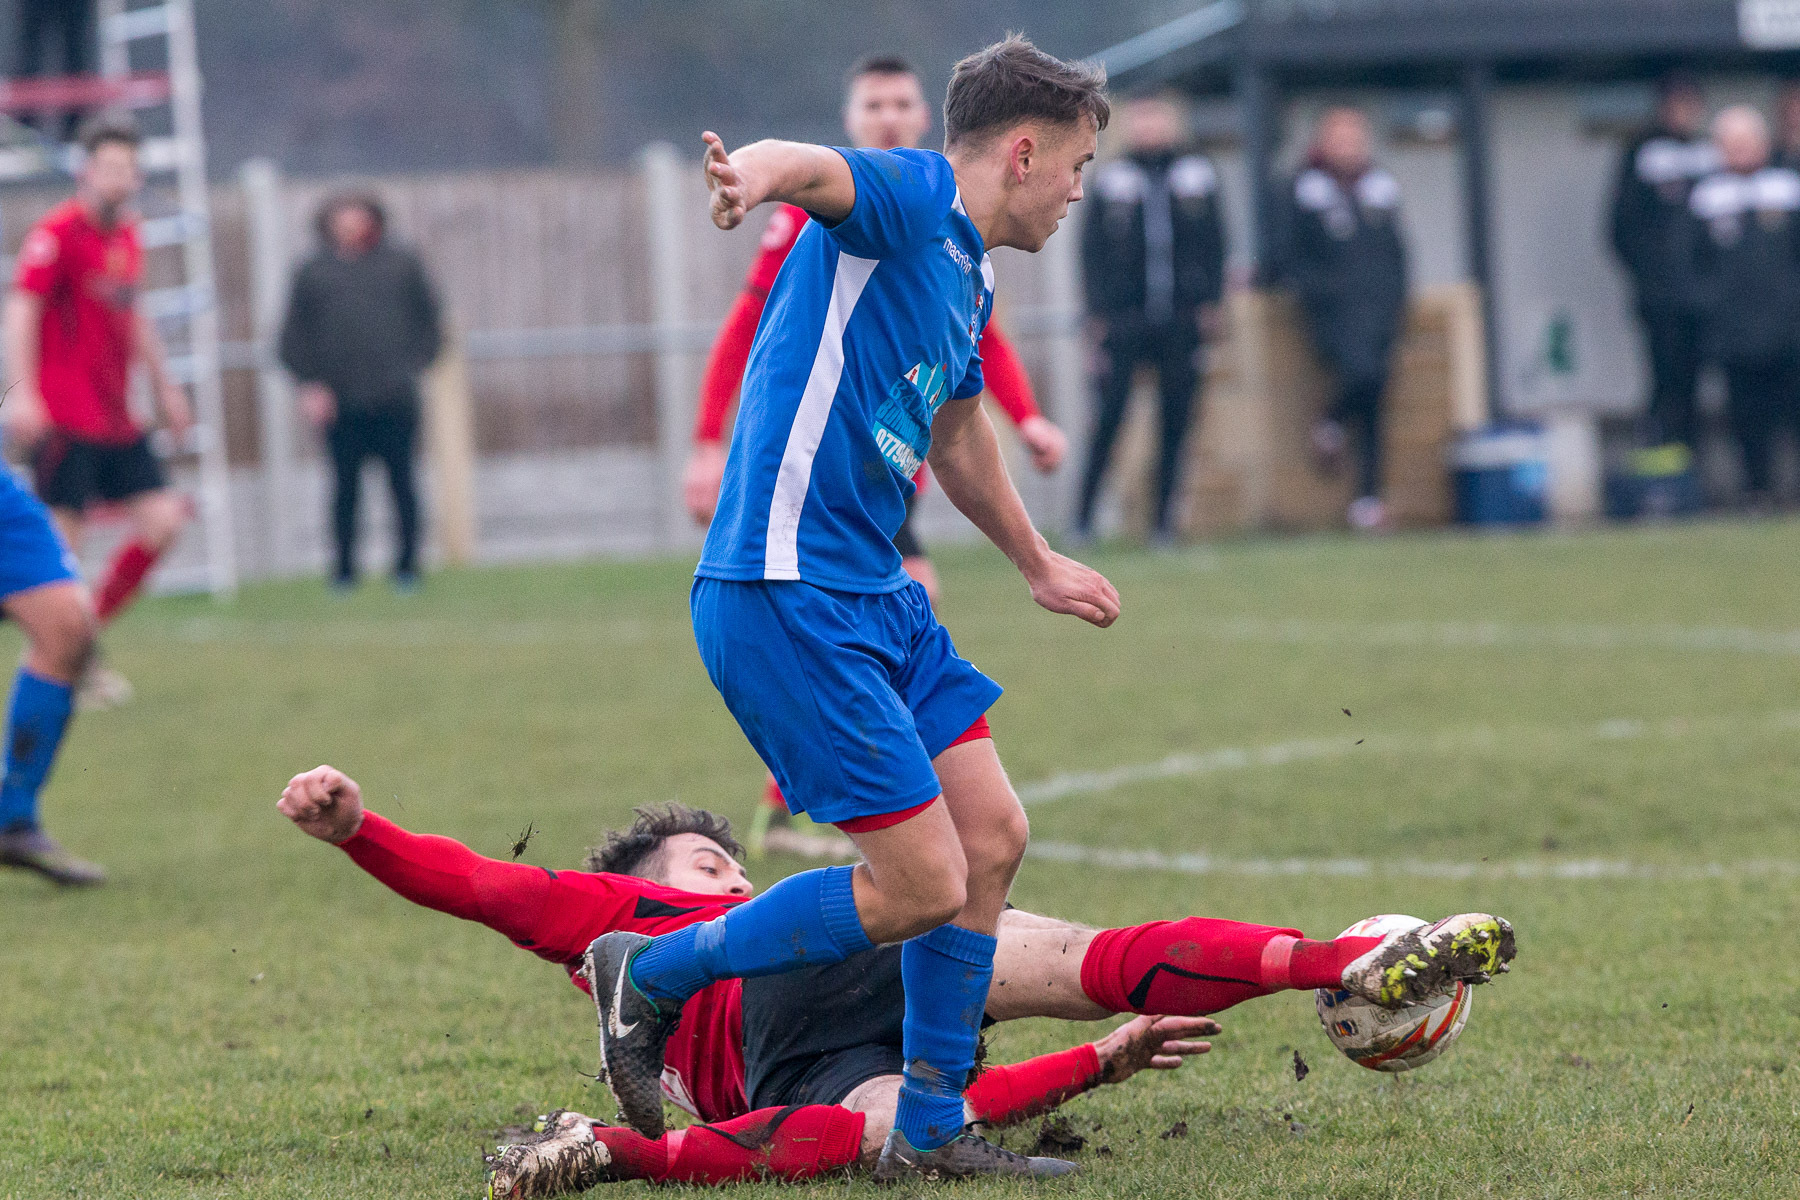 Craig Bentham tackles Alport's Nicholas Marley as Silsden kept up their record of avoiding postponements last Saturday when six other games in their division were called off     Picture: David Brett